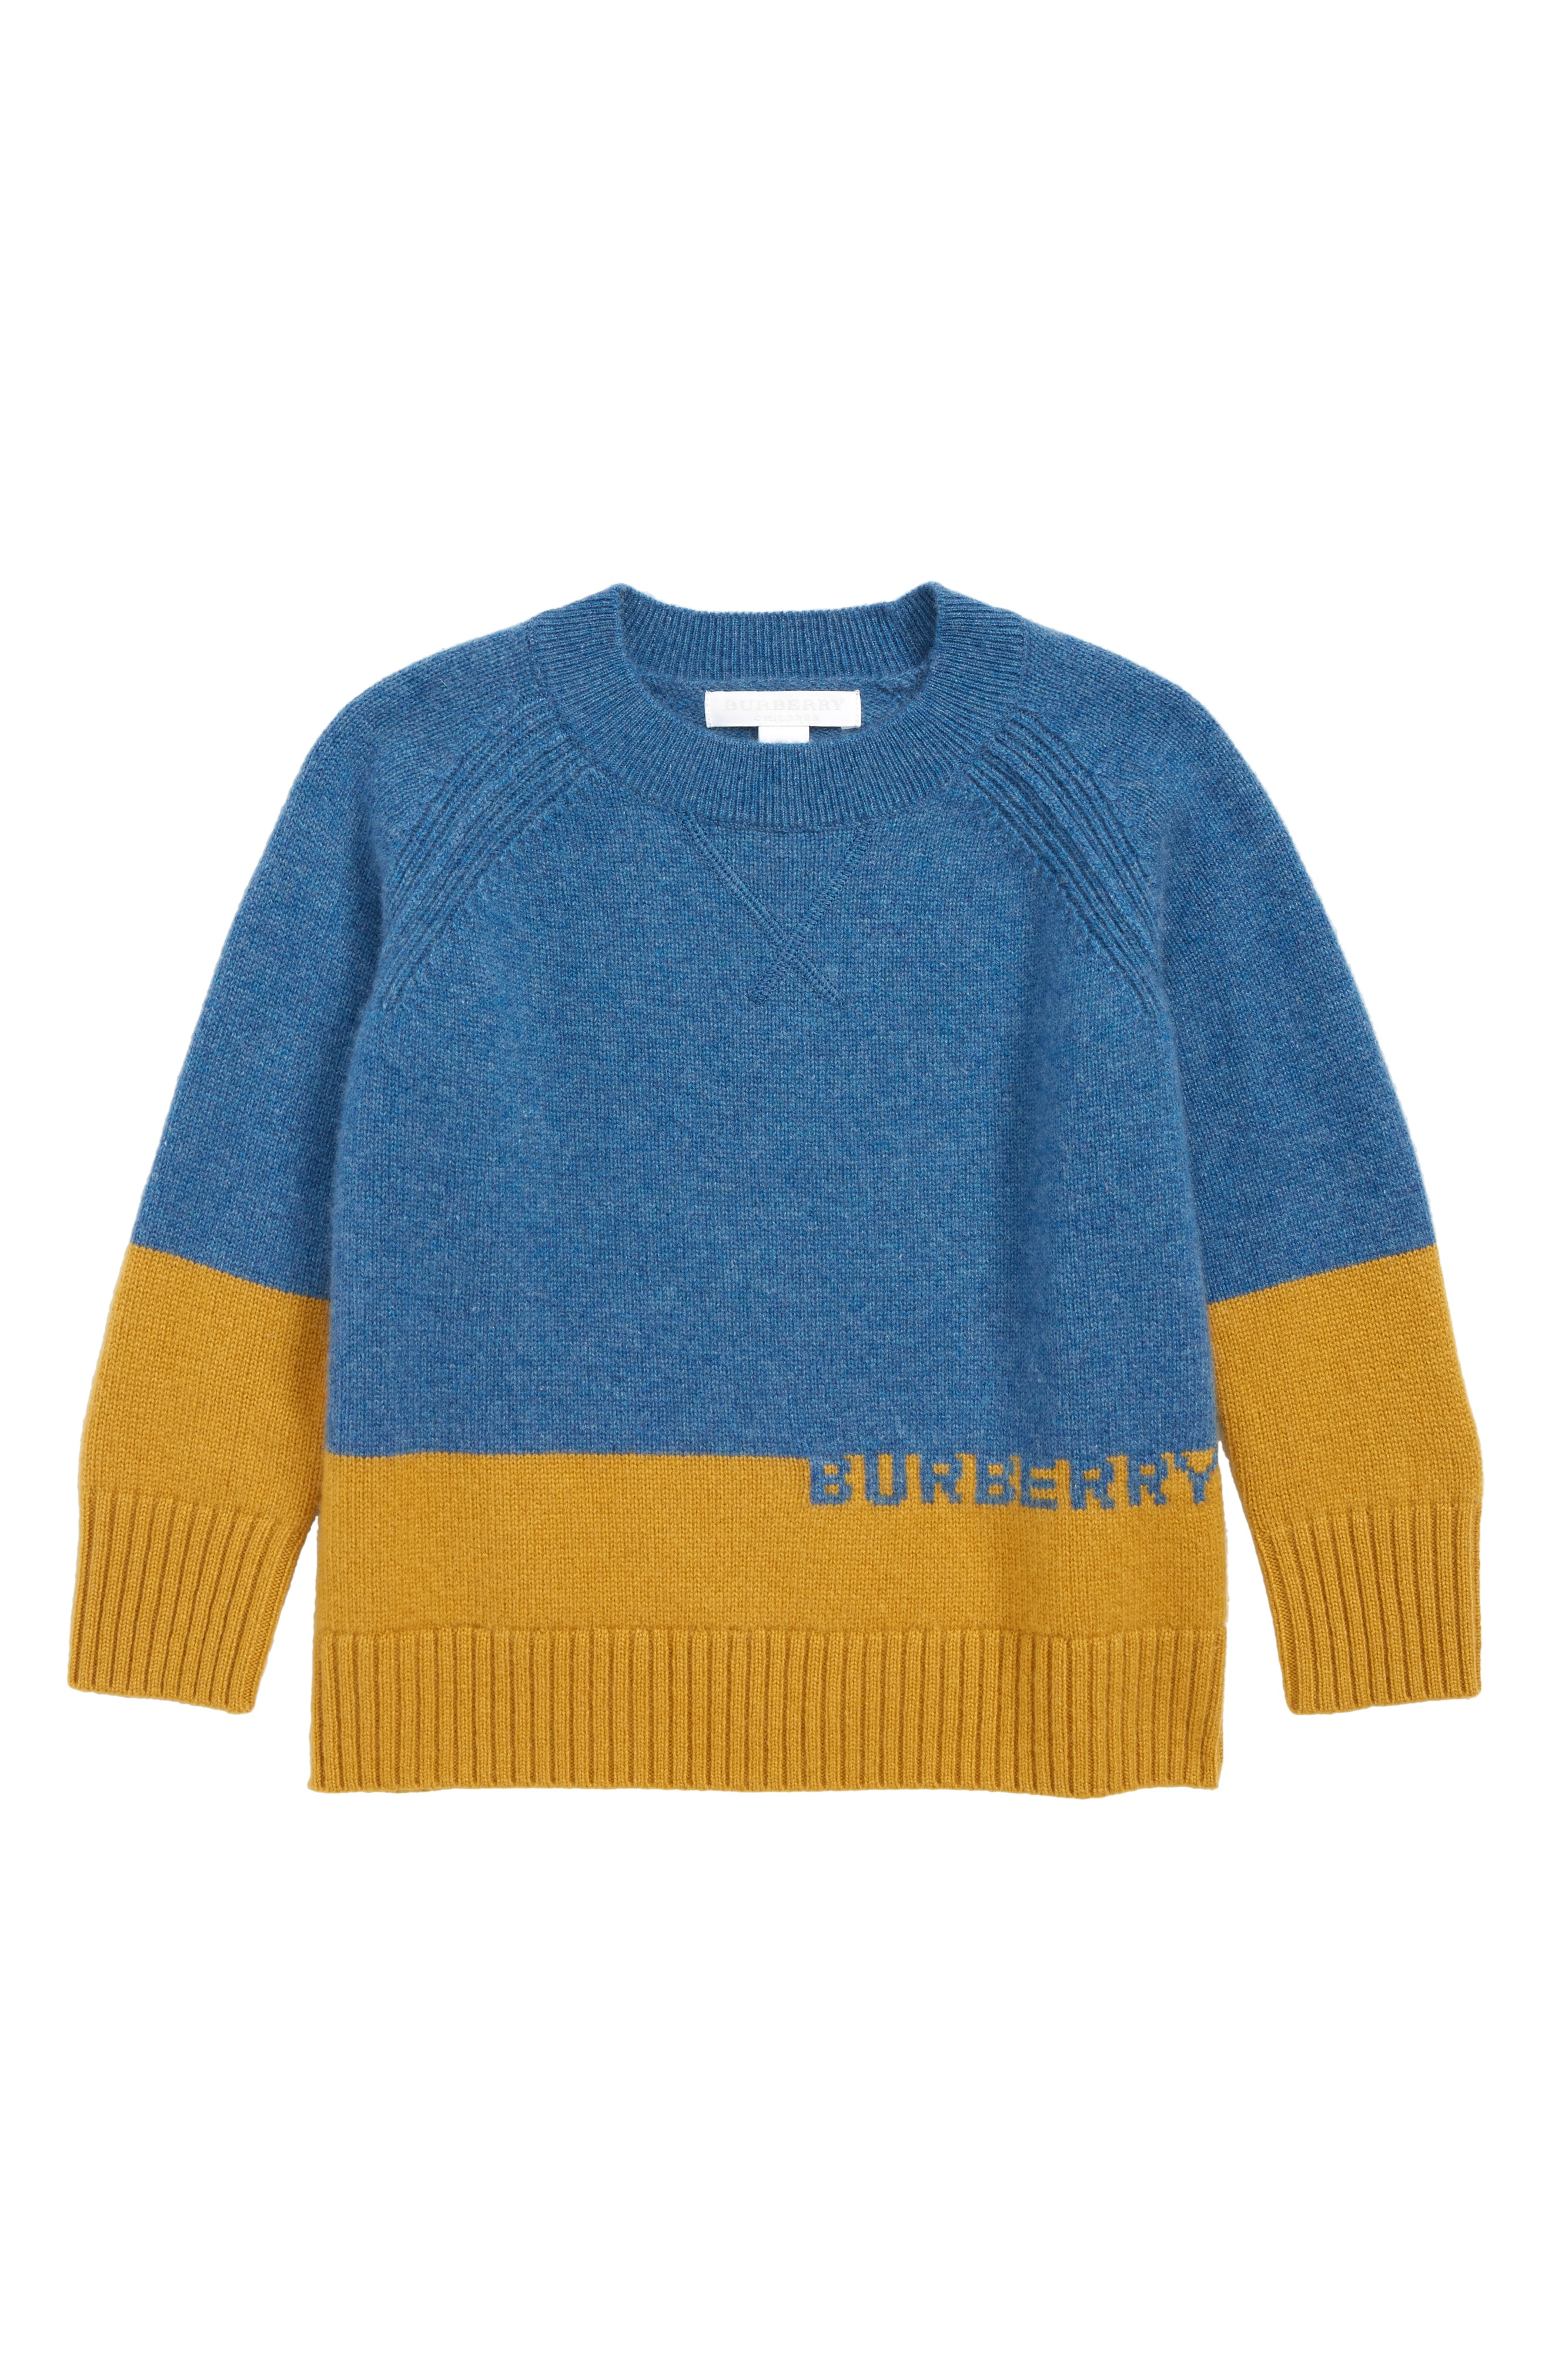 boys sweaters | Nordstrom